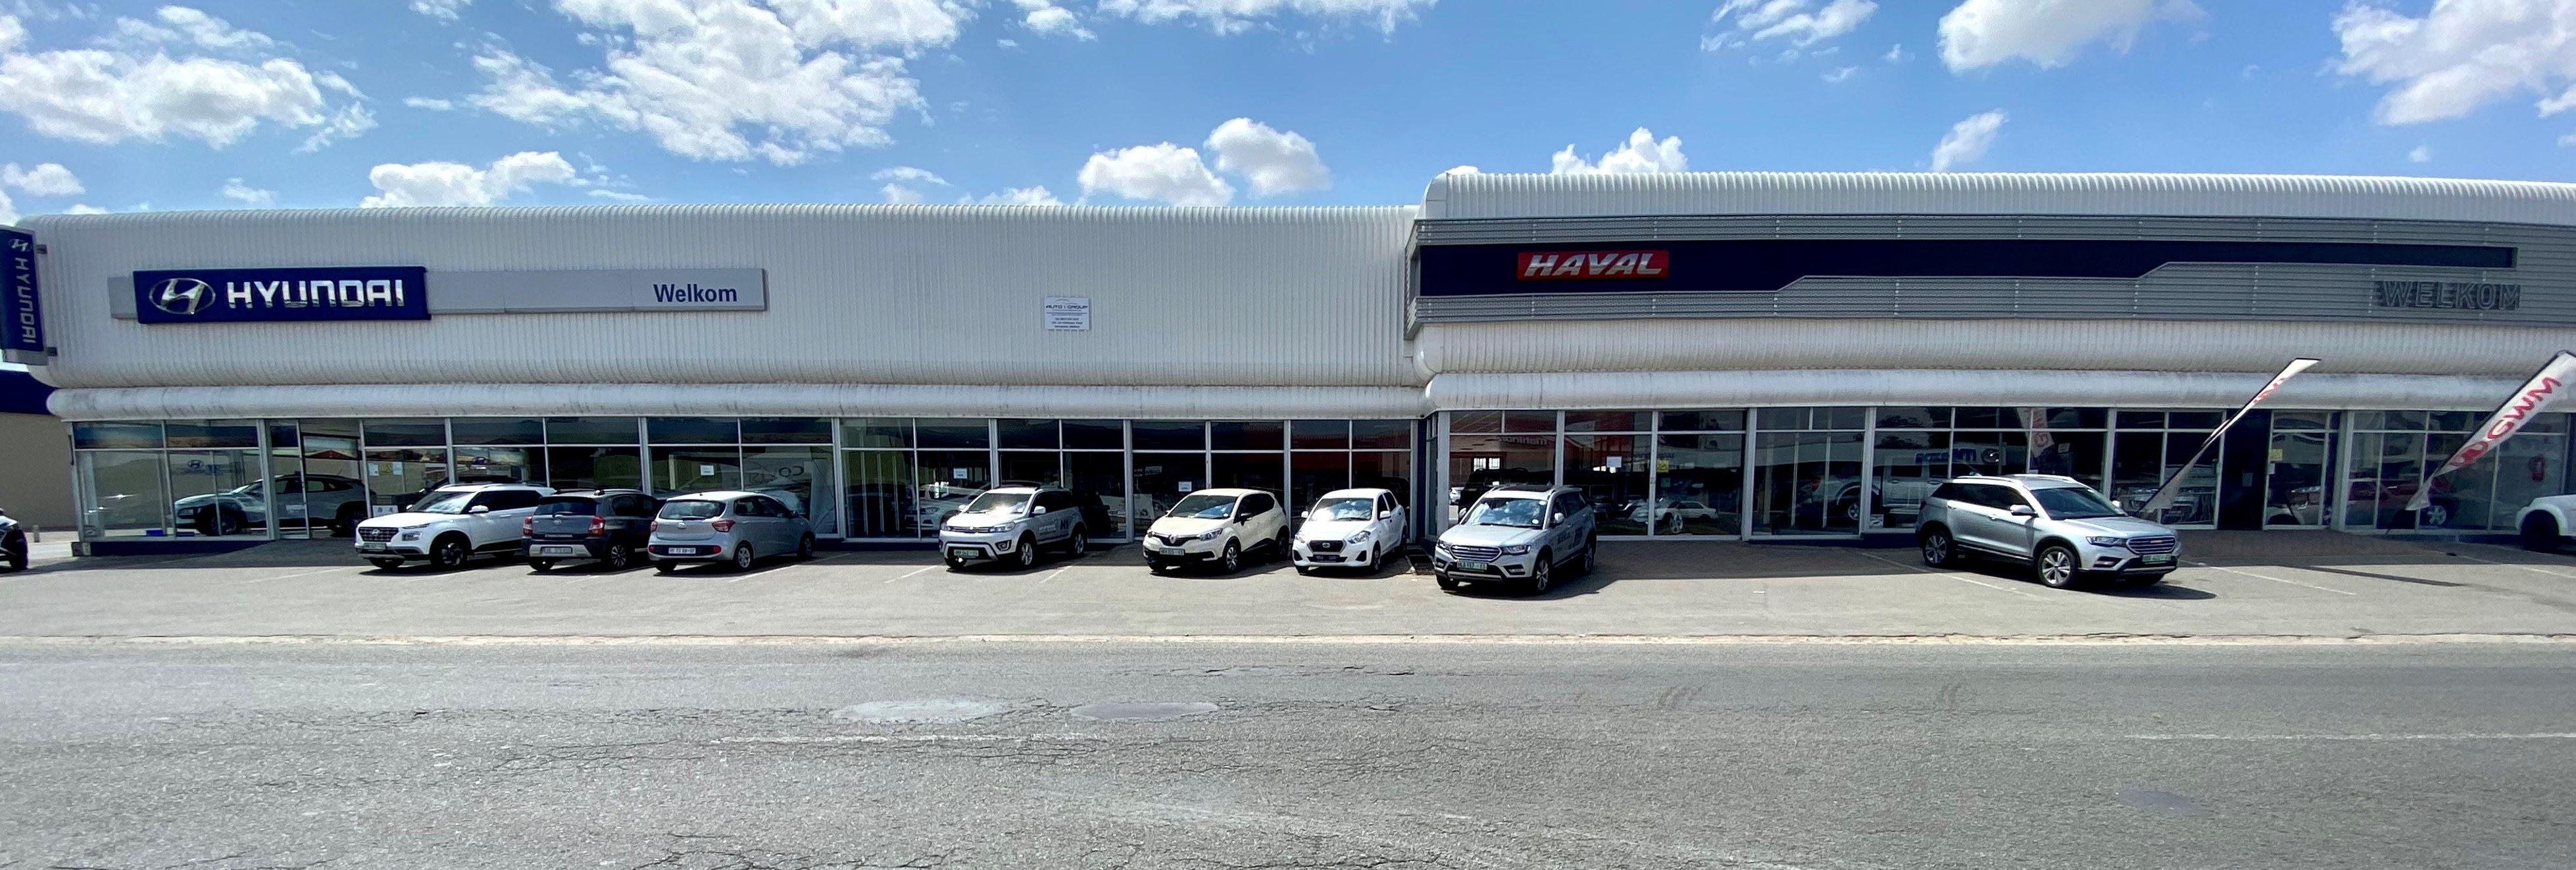 BB Welkom's Hyundai and Haval Dealerships.